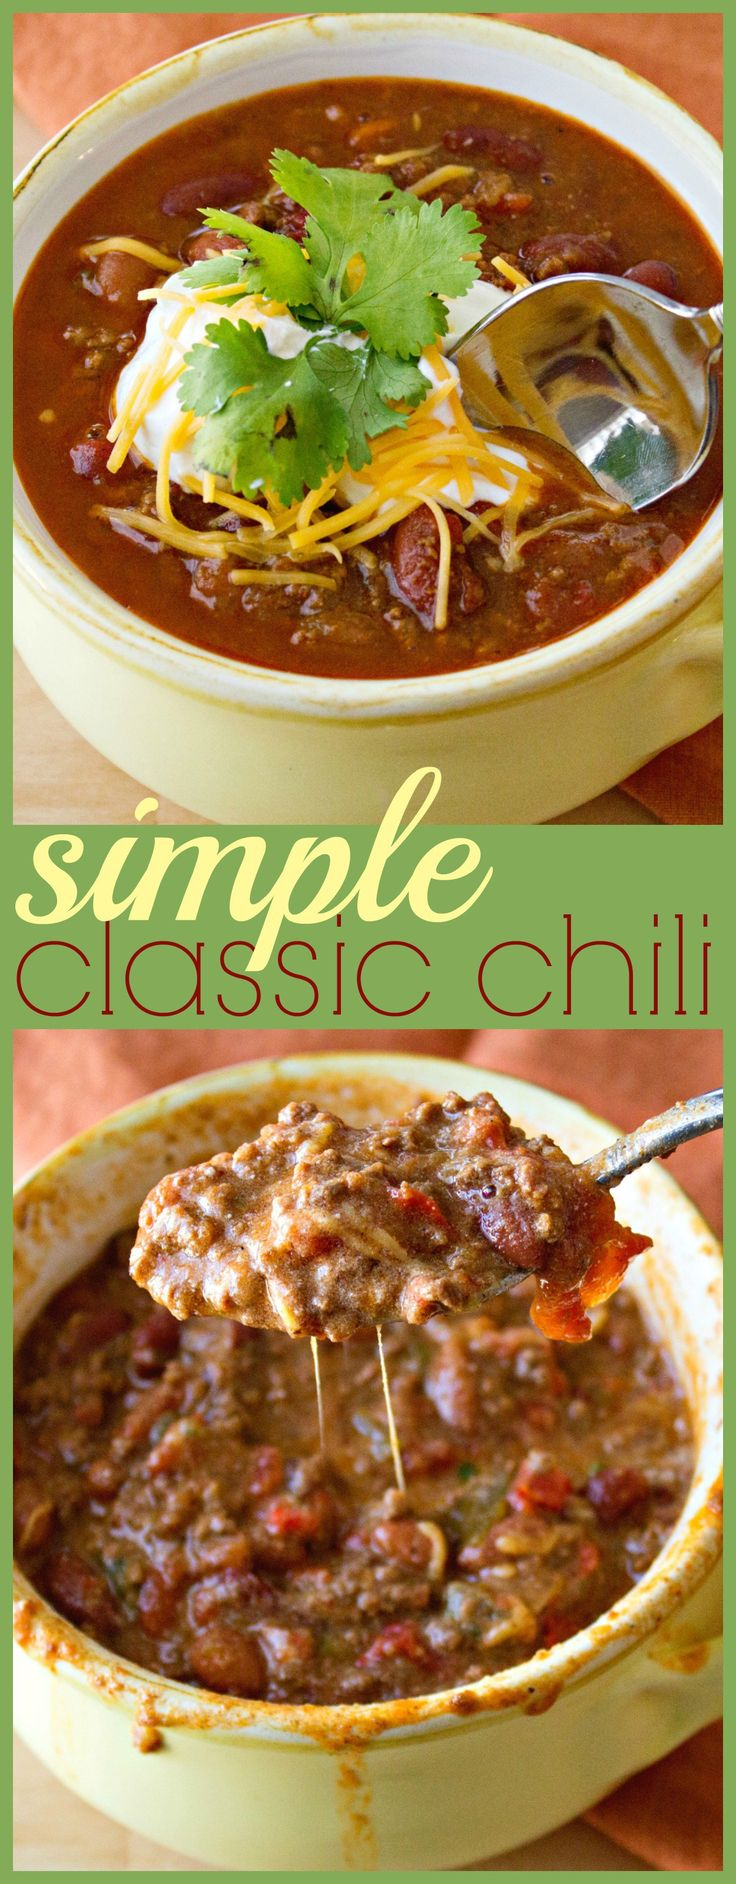 A no-frills recipes for a simple classic chili. Made with lean beef, two different kinds of beans, and a whole lot of heartiness, this classic chili is perfect on it's own or mixed into cheese for a yummy queso dip.